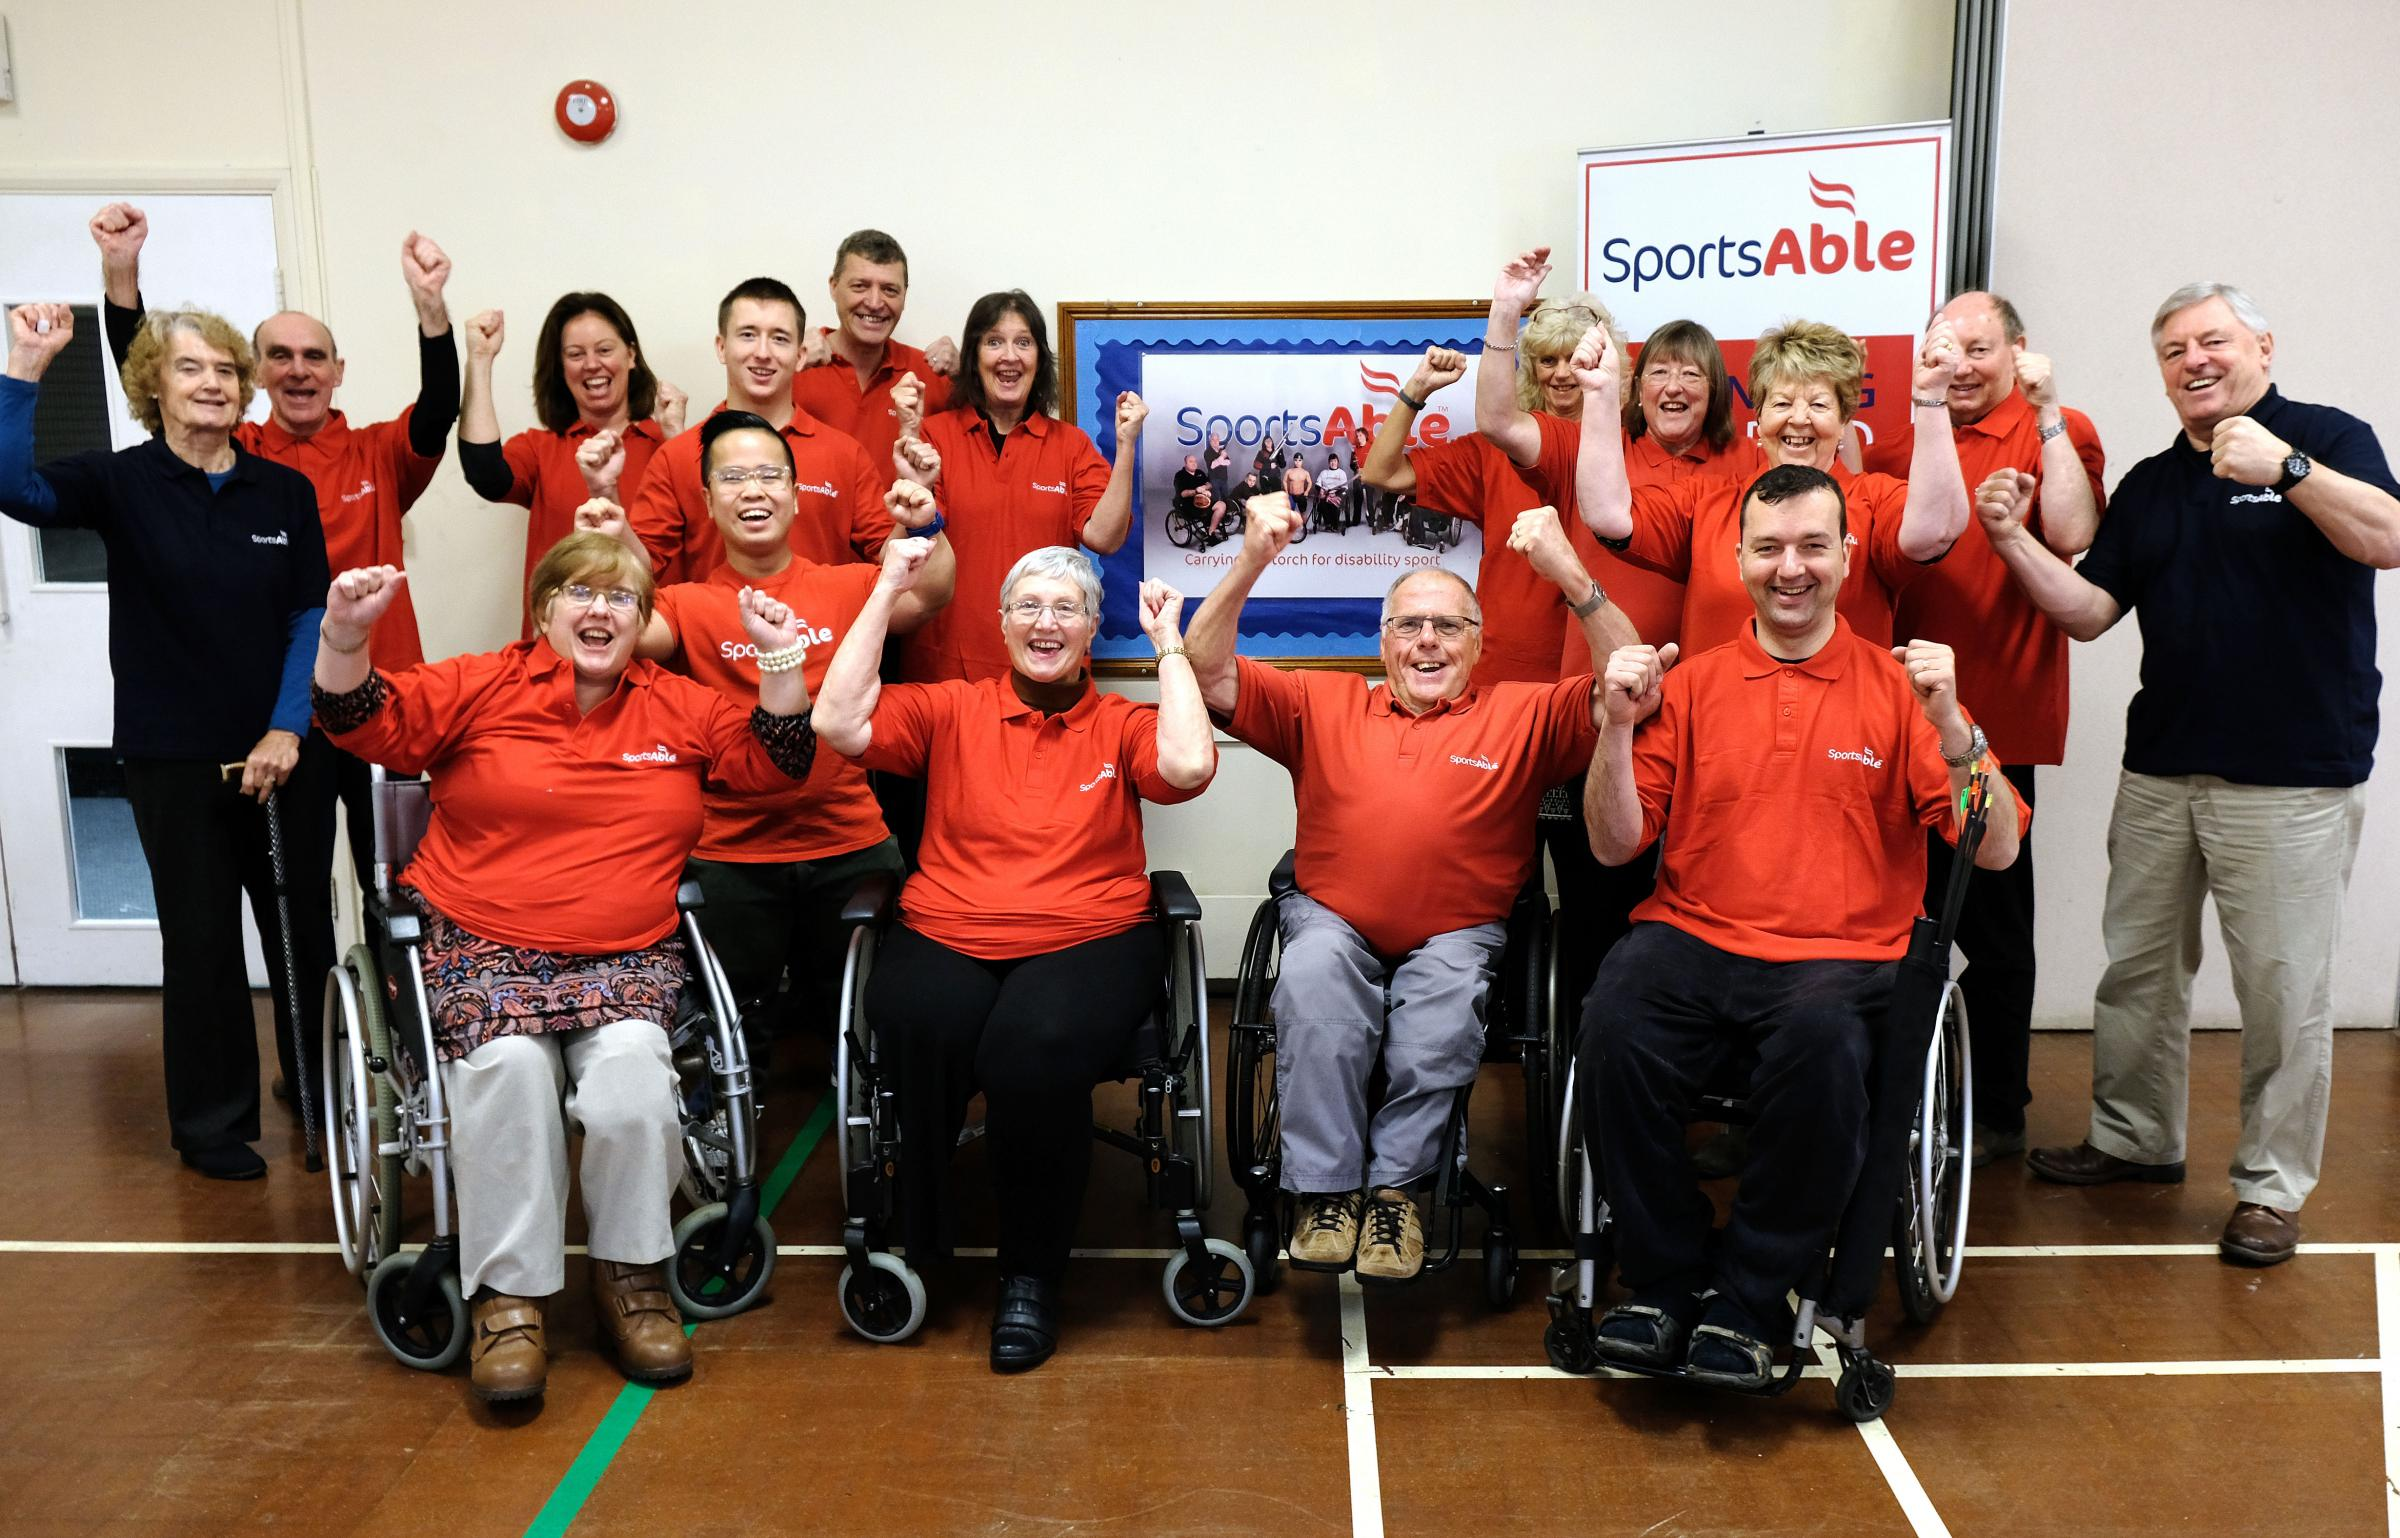 Staff, volunteers and users at SportsAble in a gala mood